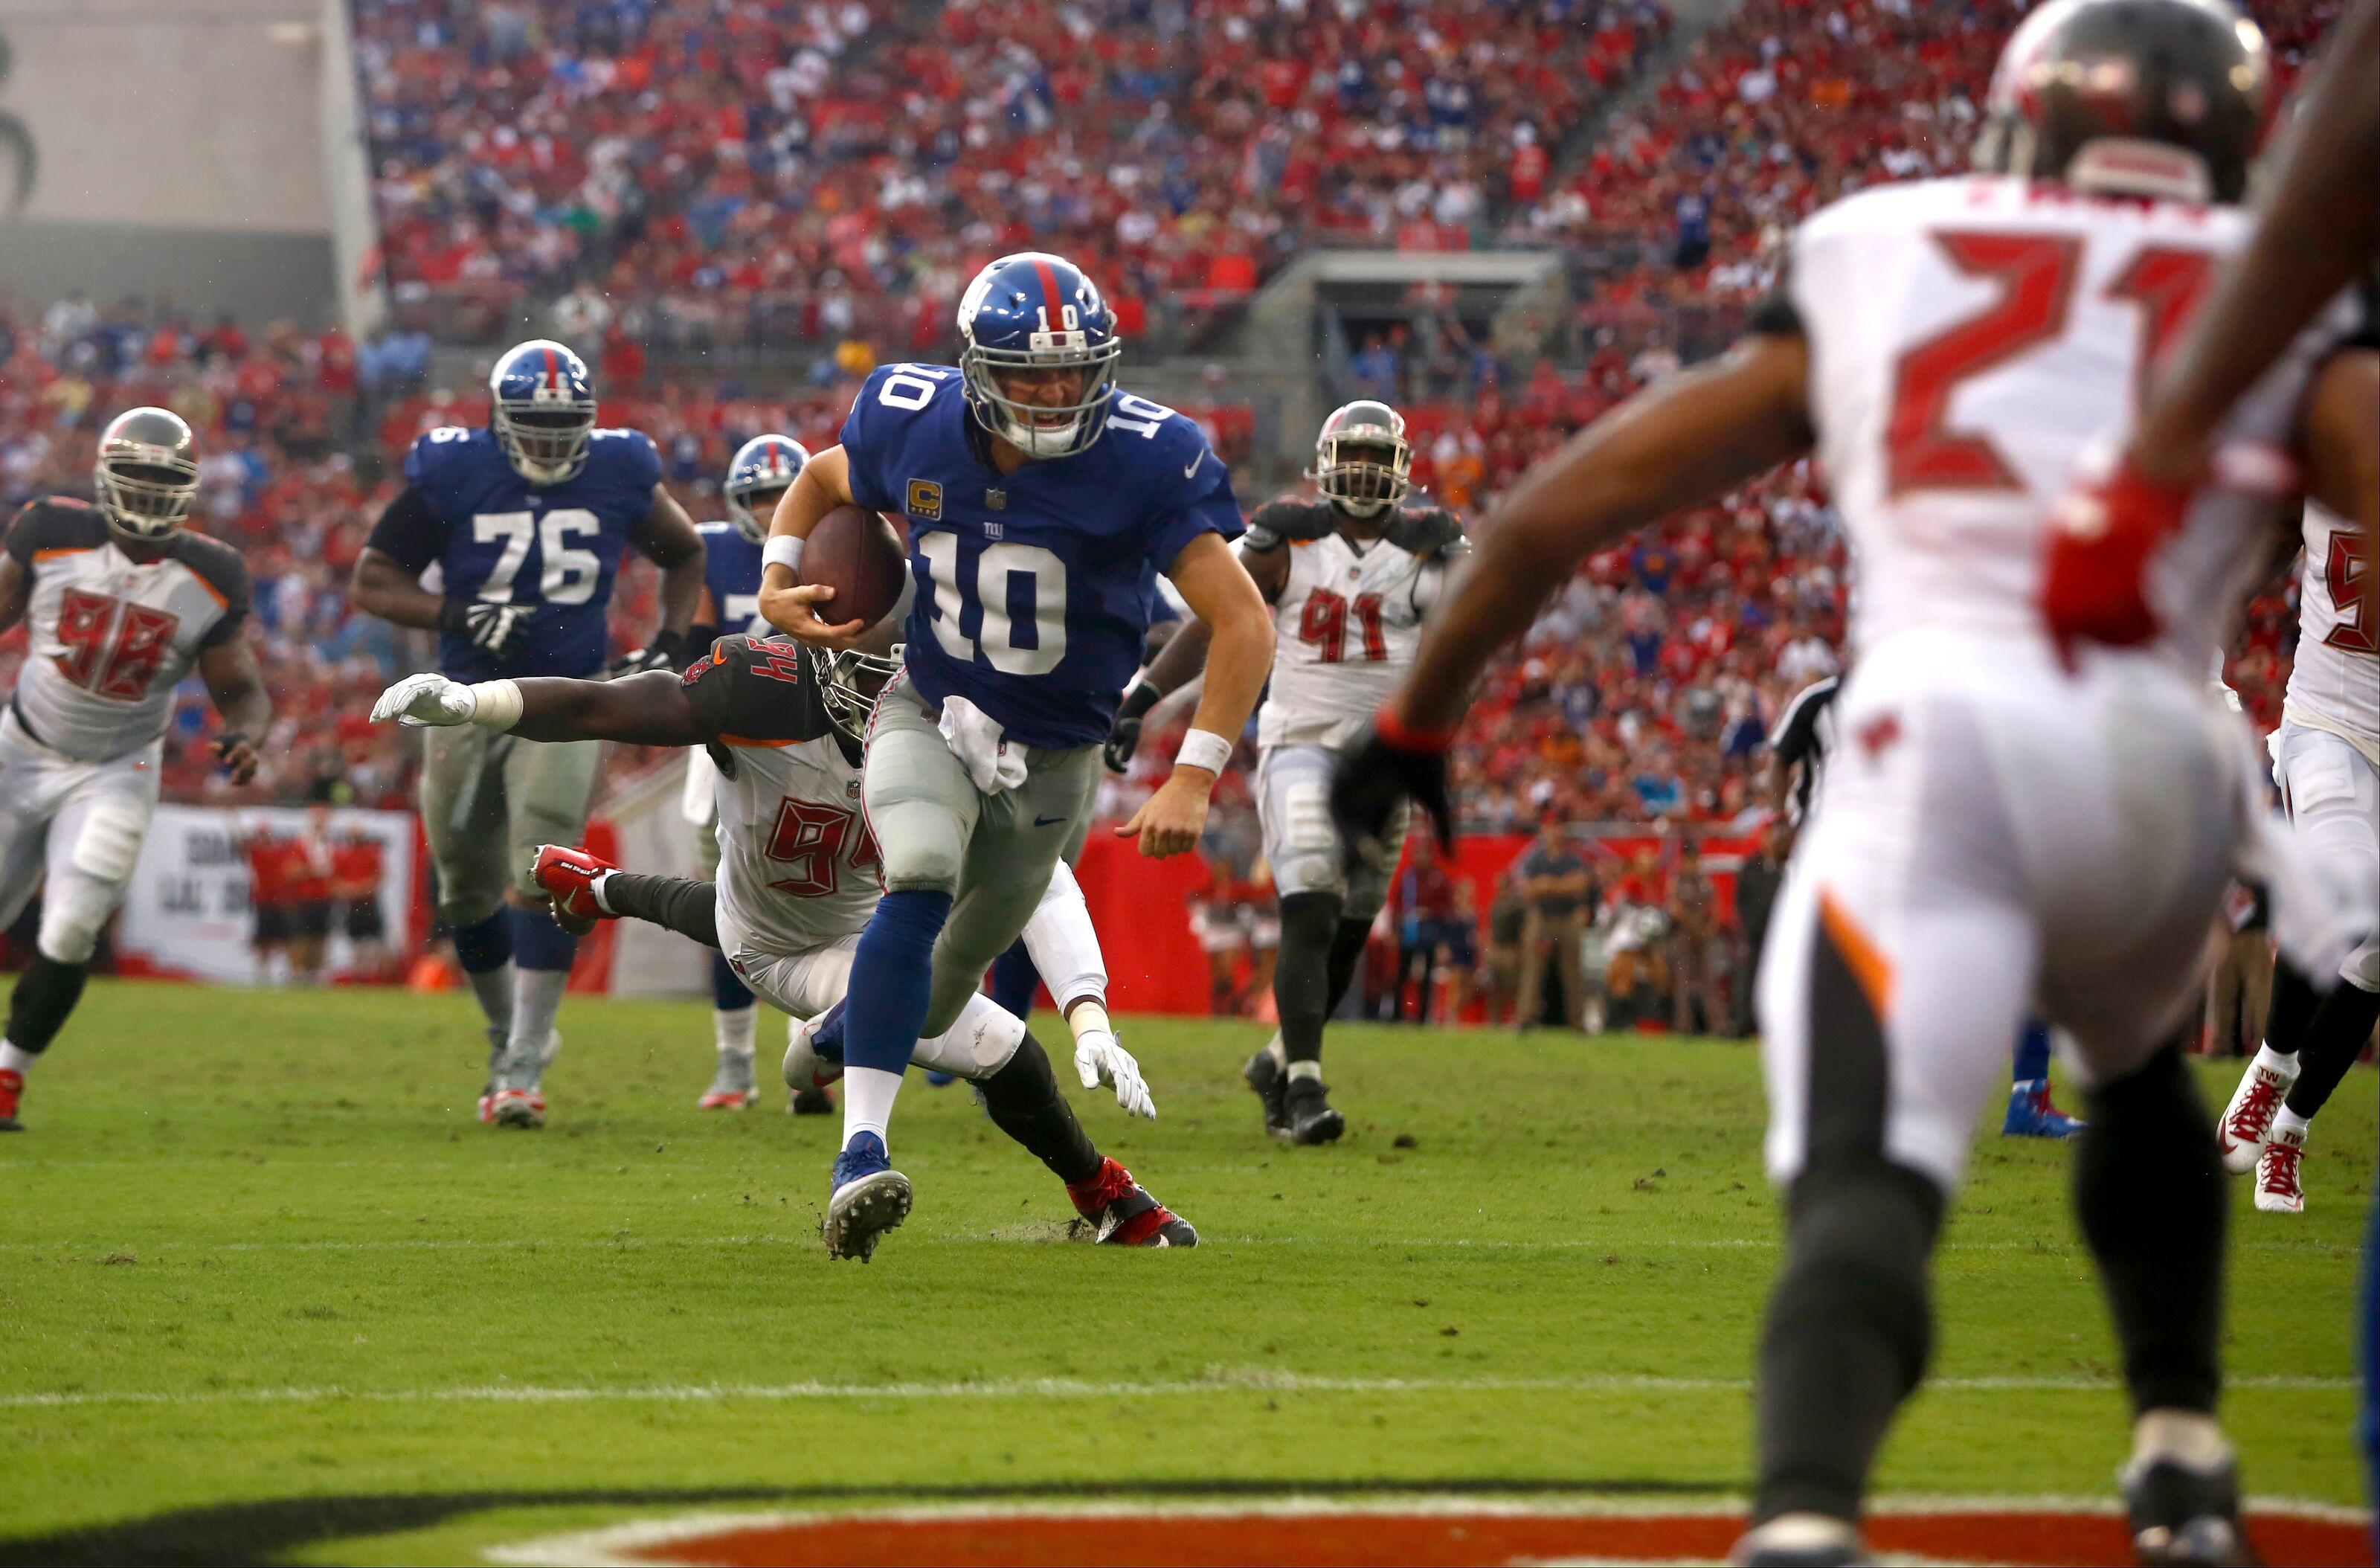 Buccaneers at Giants: Stream, game time, how to watch